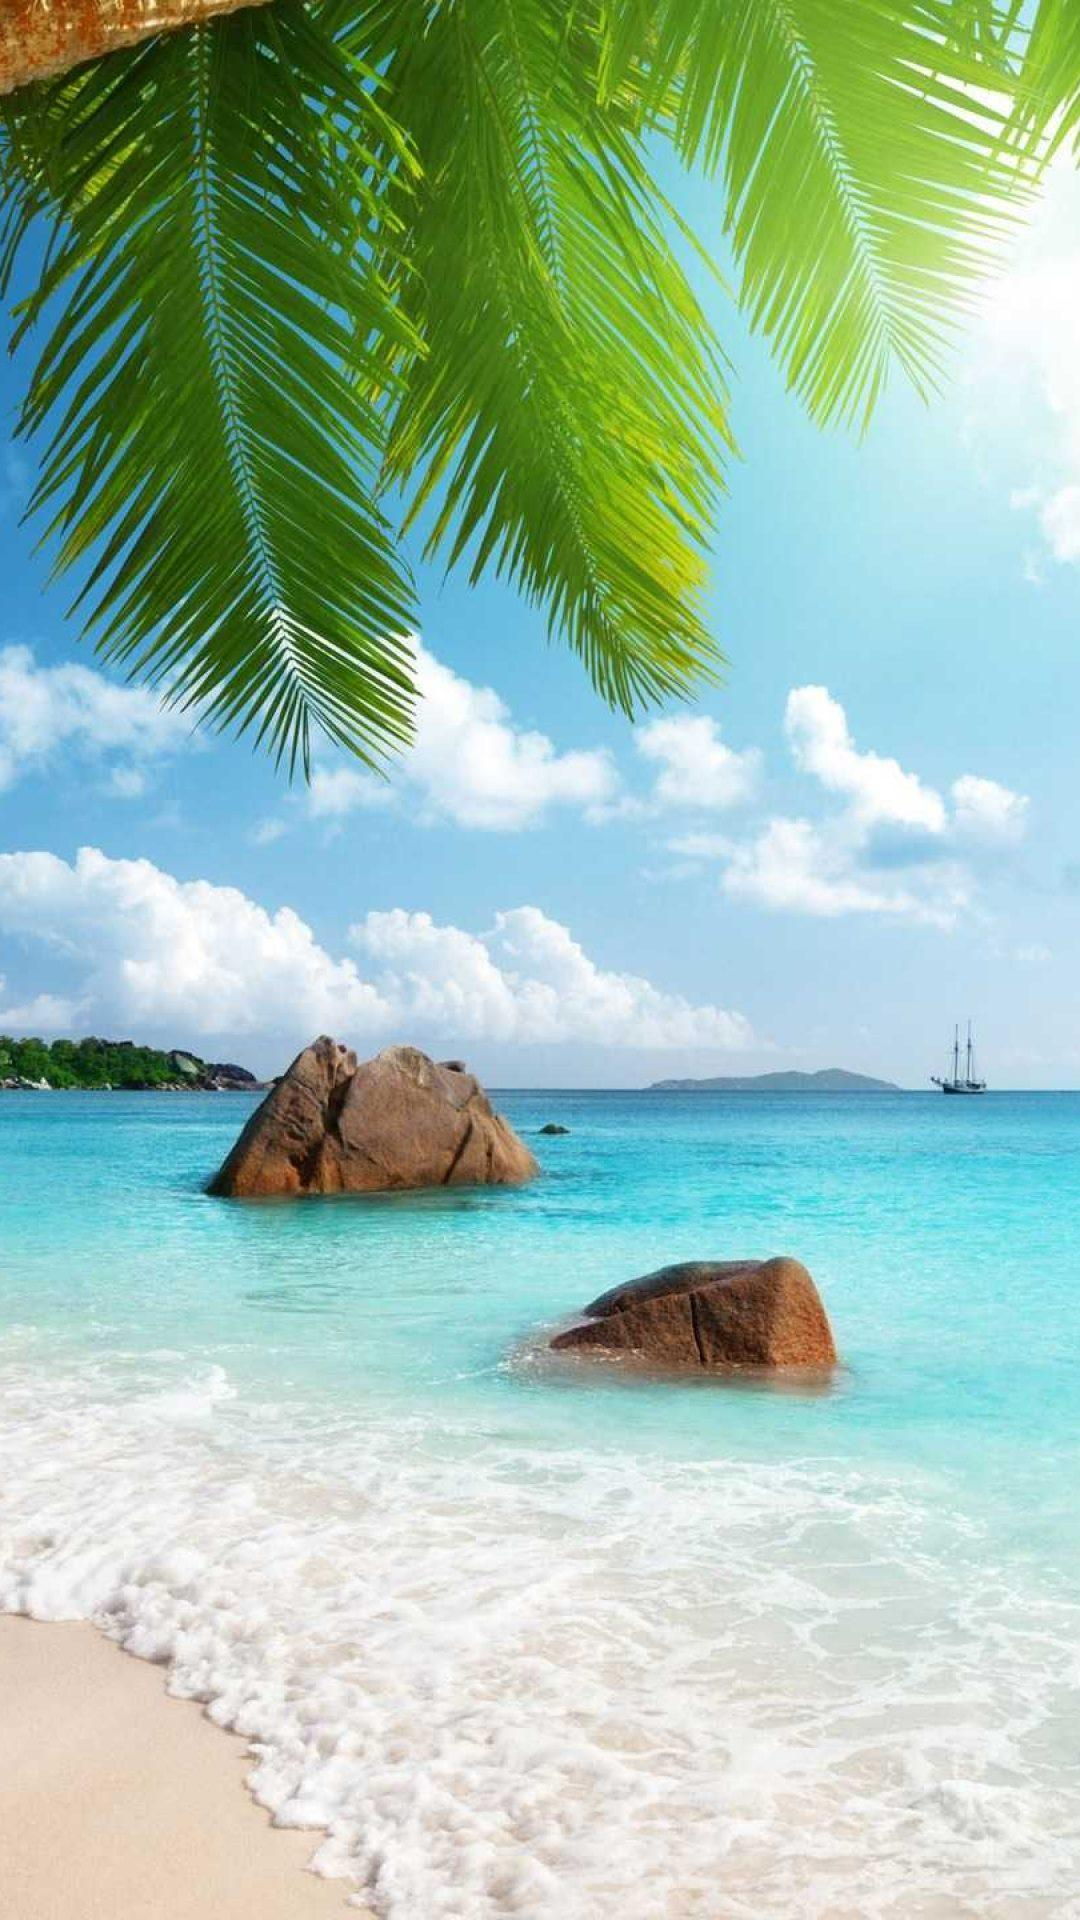 Hd Beach Wallpapers For Android Apk Download